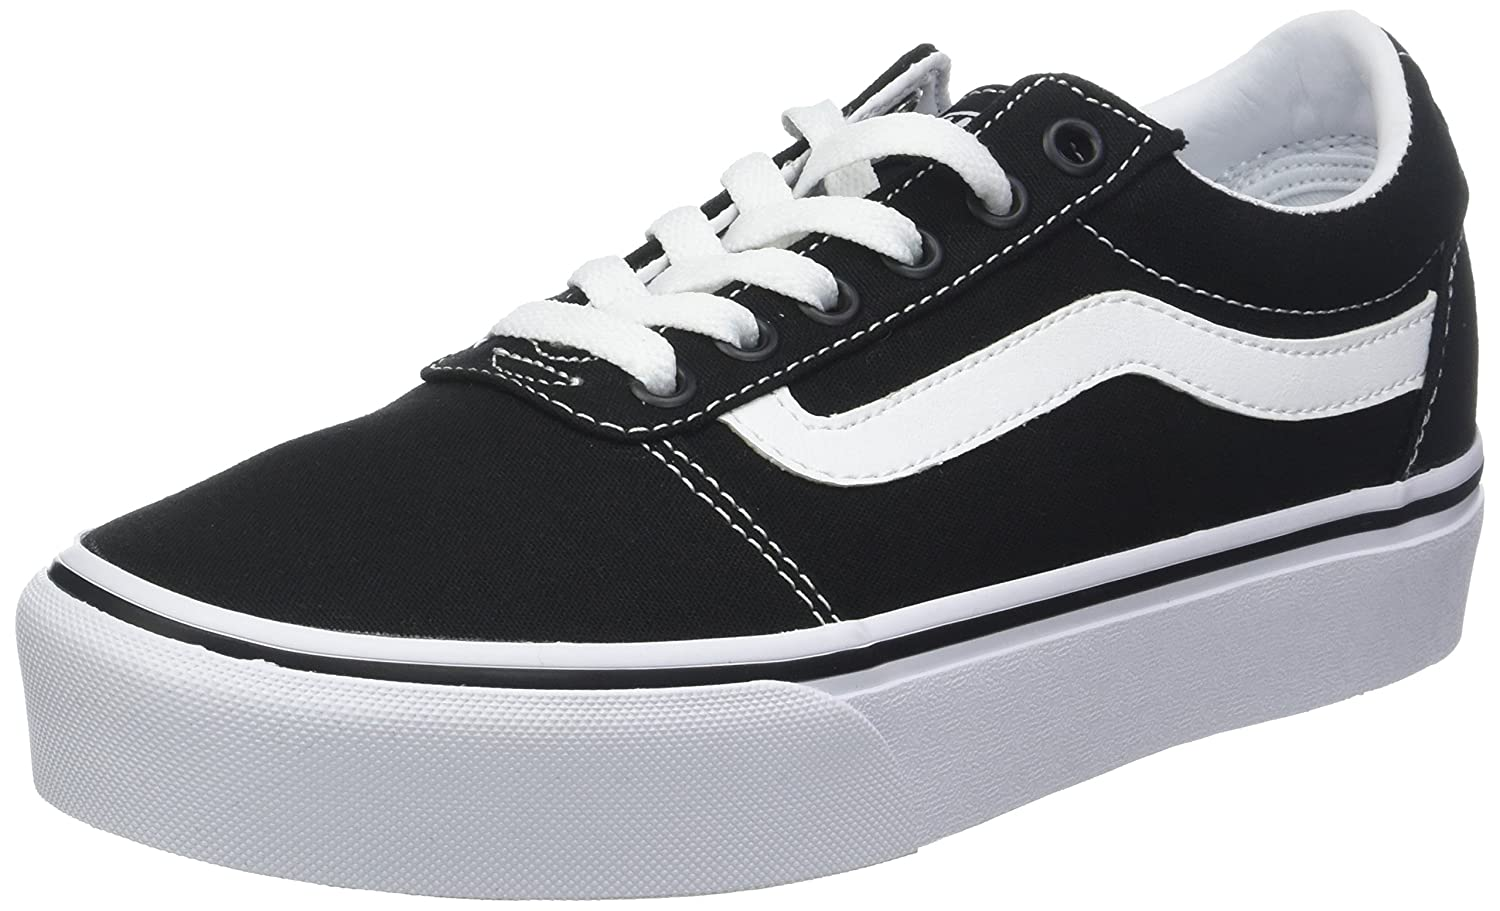 74fd9dccf3ea Vans Women s Ward Platform Canvas Low-Top Sneakers  Amazon.co.uk  Shoes    Bags